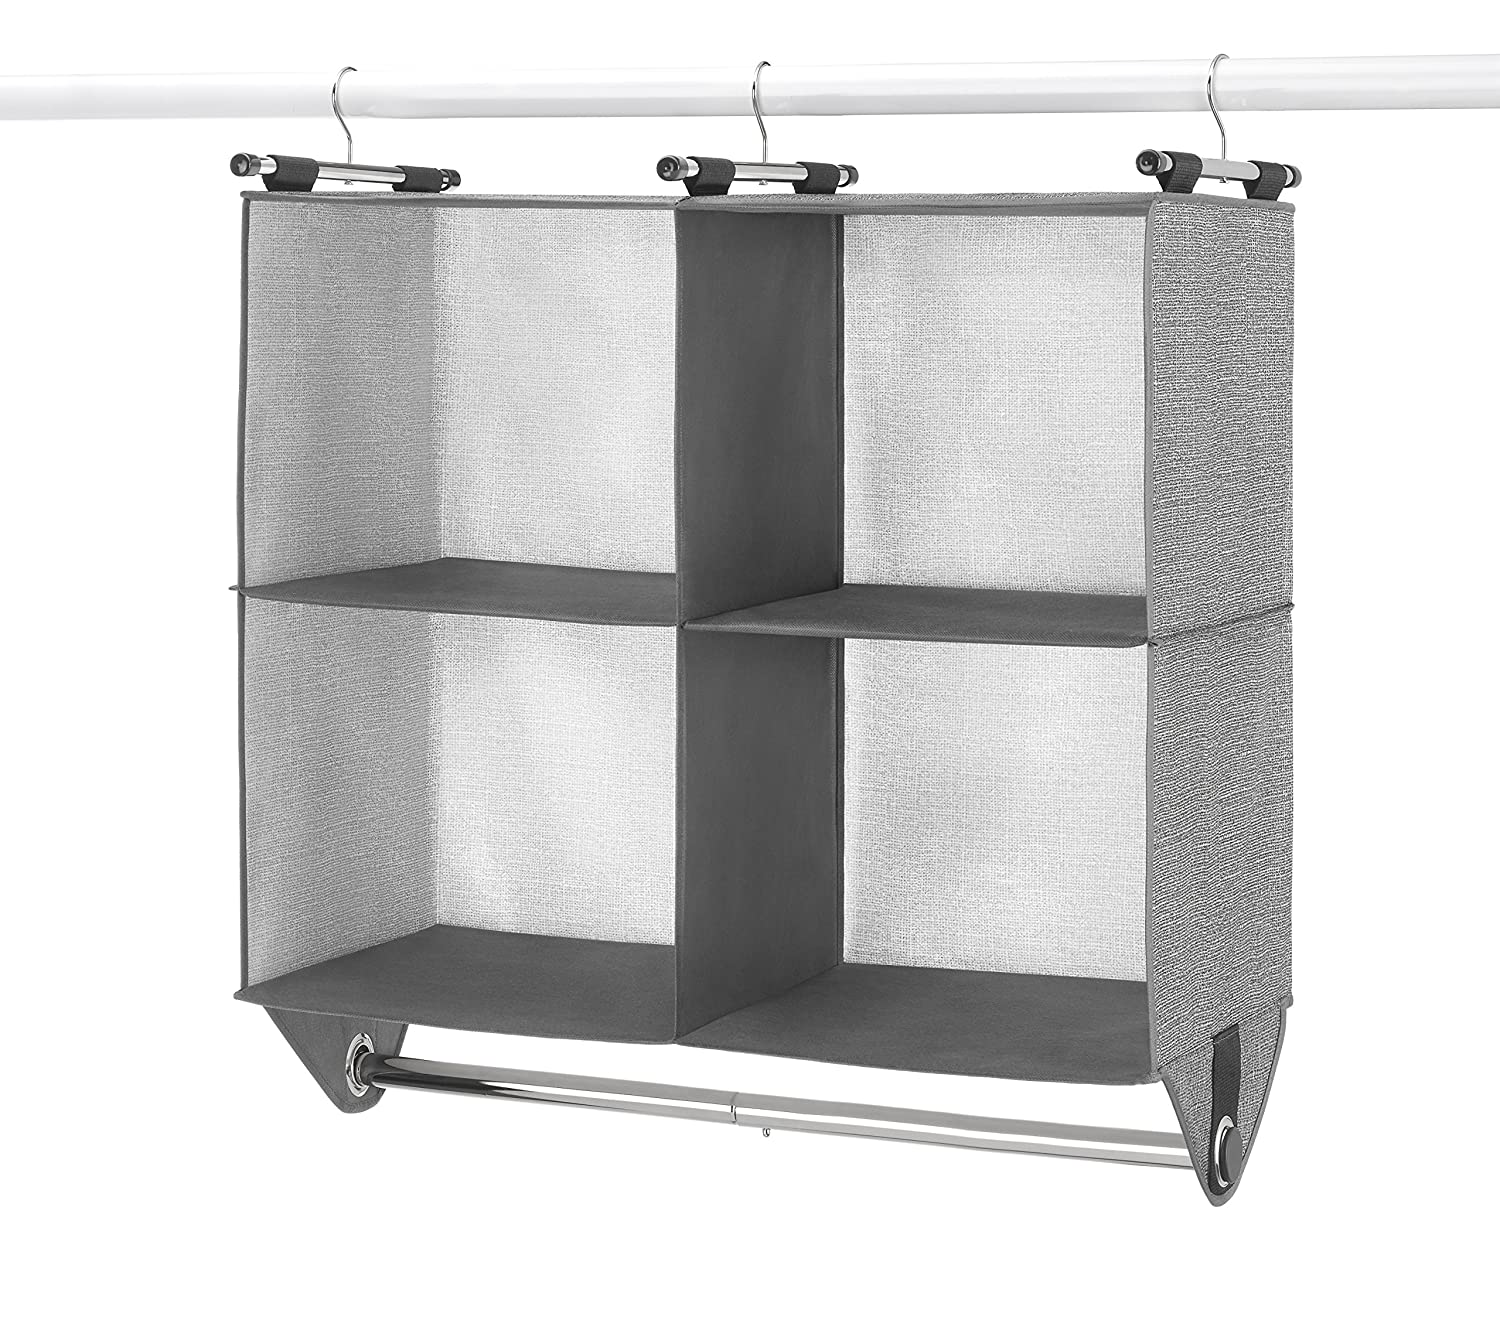 4 Section Fabric Closet Organizer Shelving with Built In Chrome Garment Rod